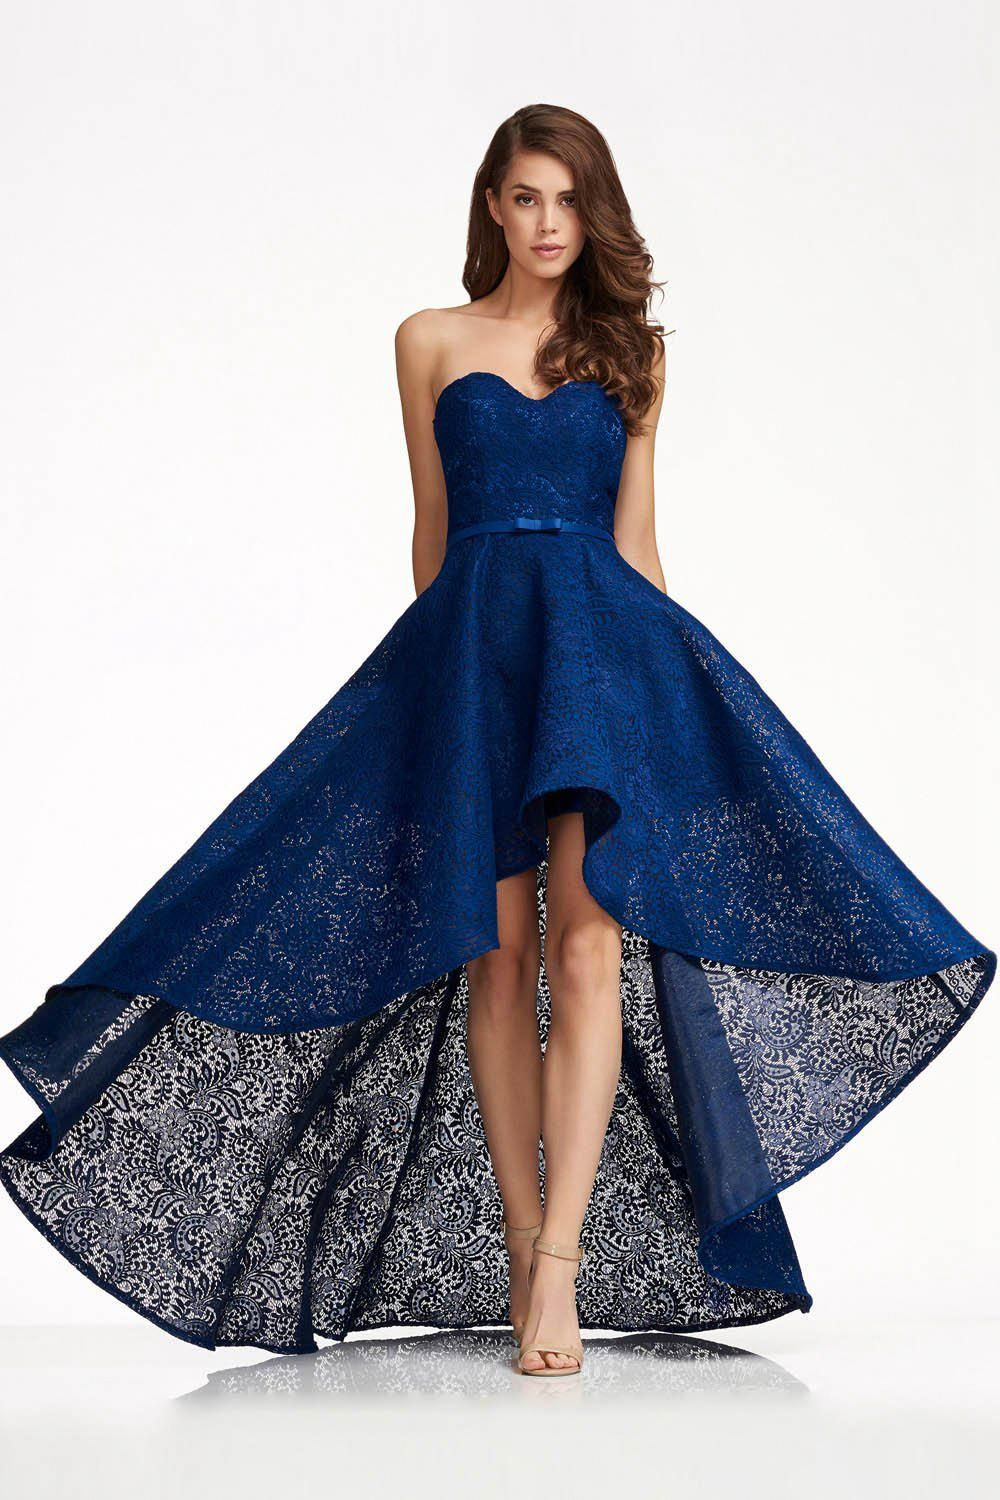 Sweetheart Lace High-low Prom Dress  homecomingdressesgorgeous ... 6c7221e35ac6